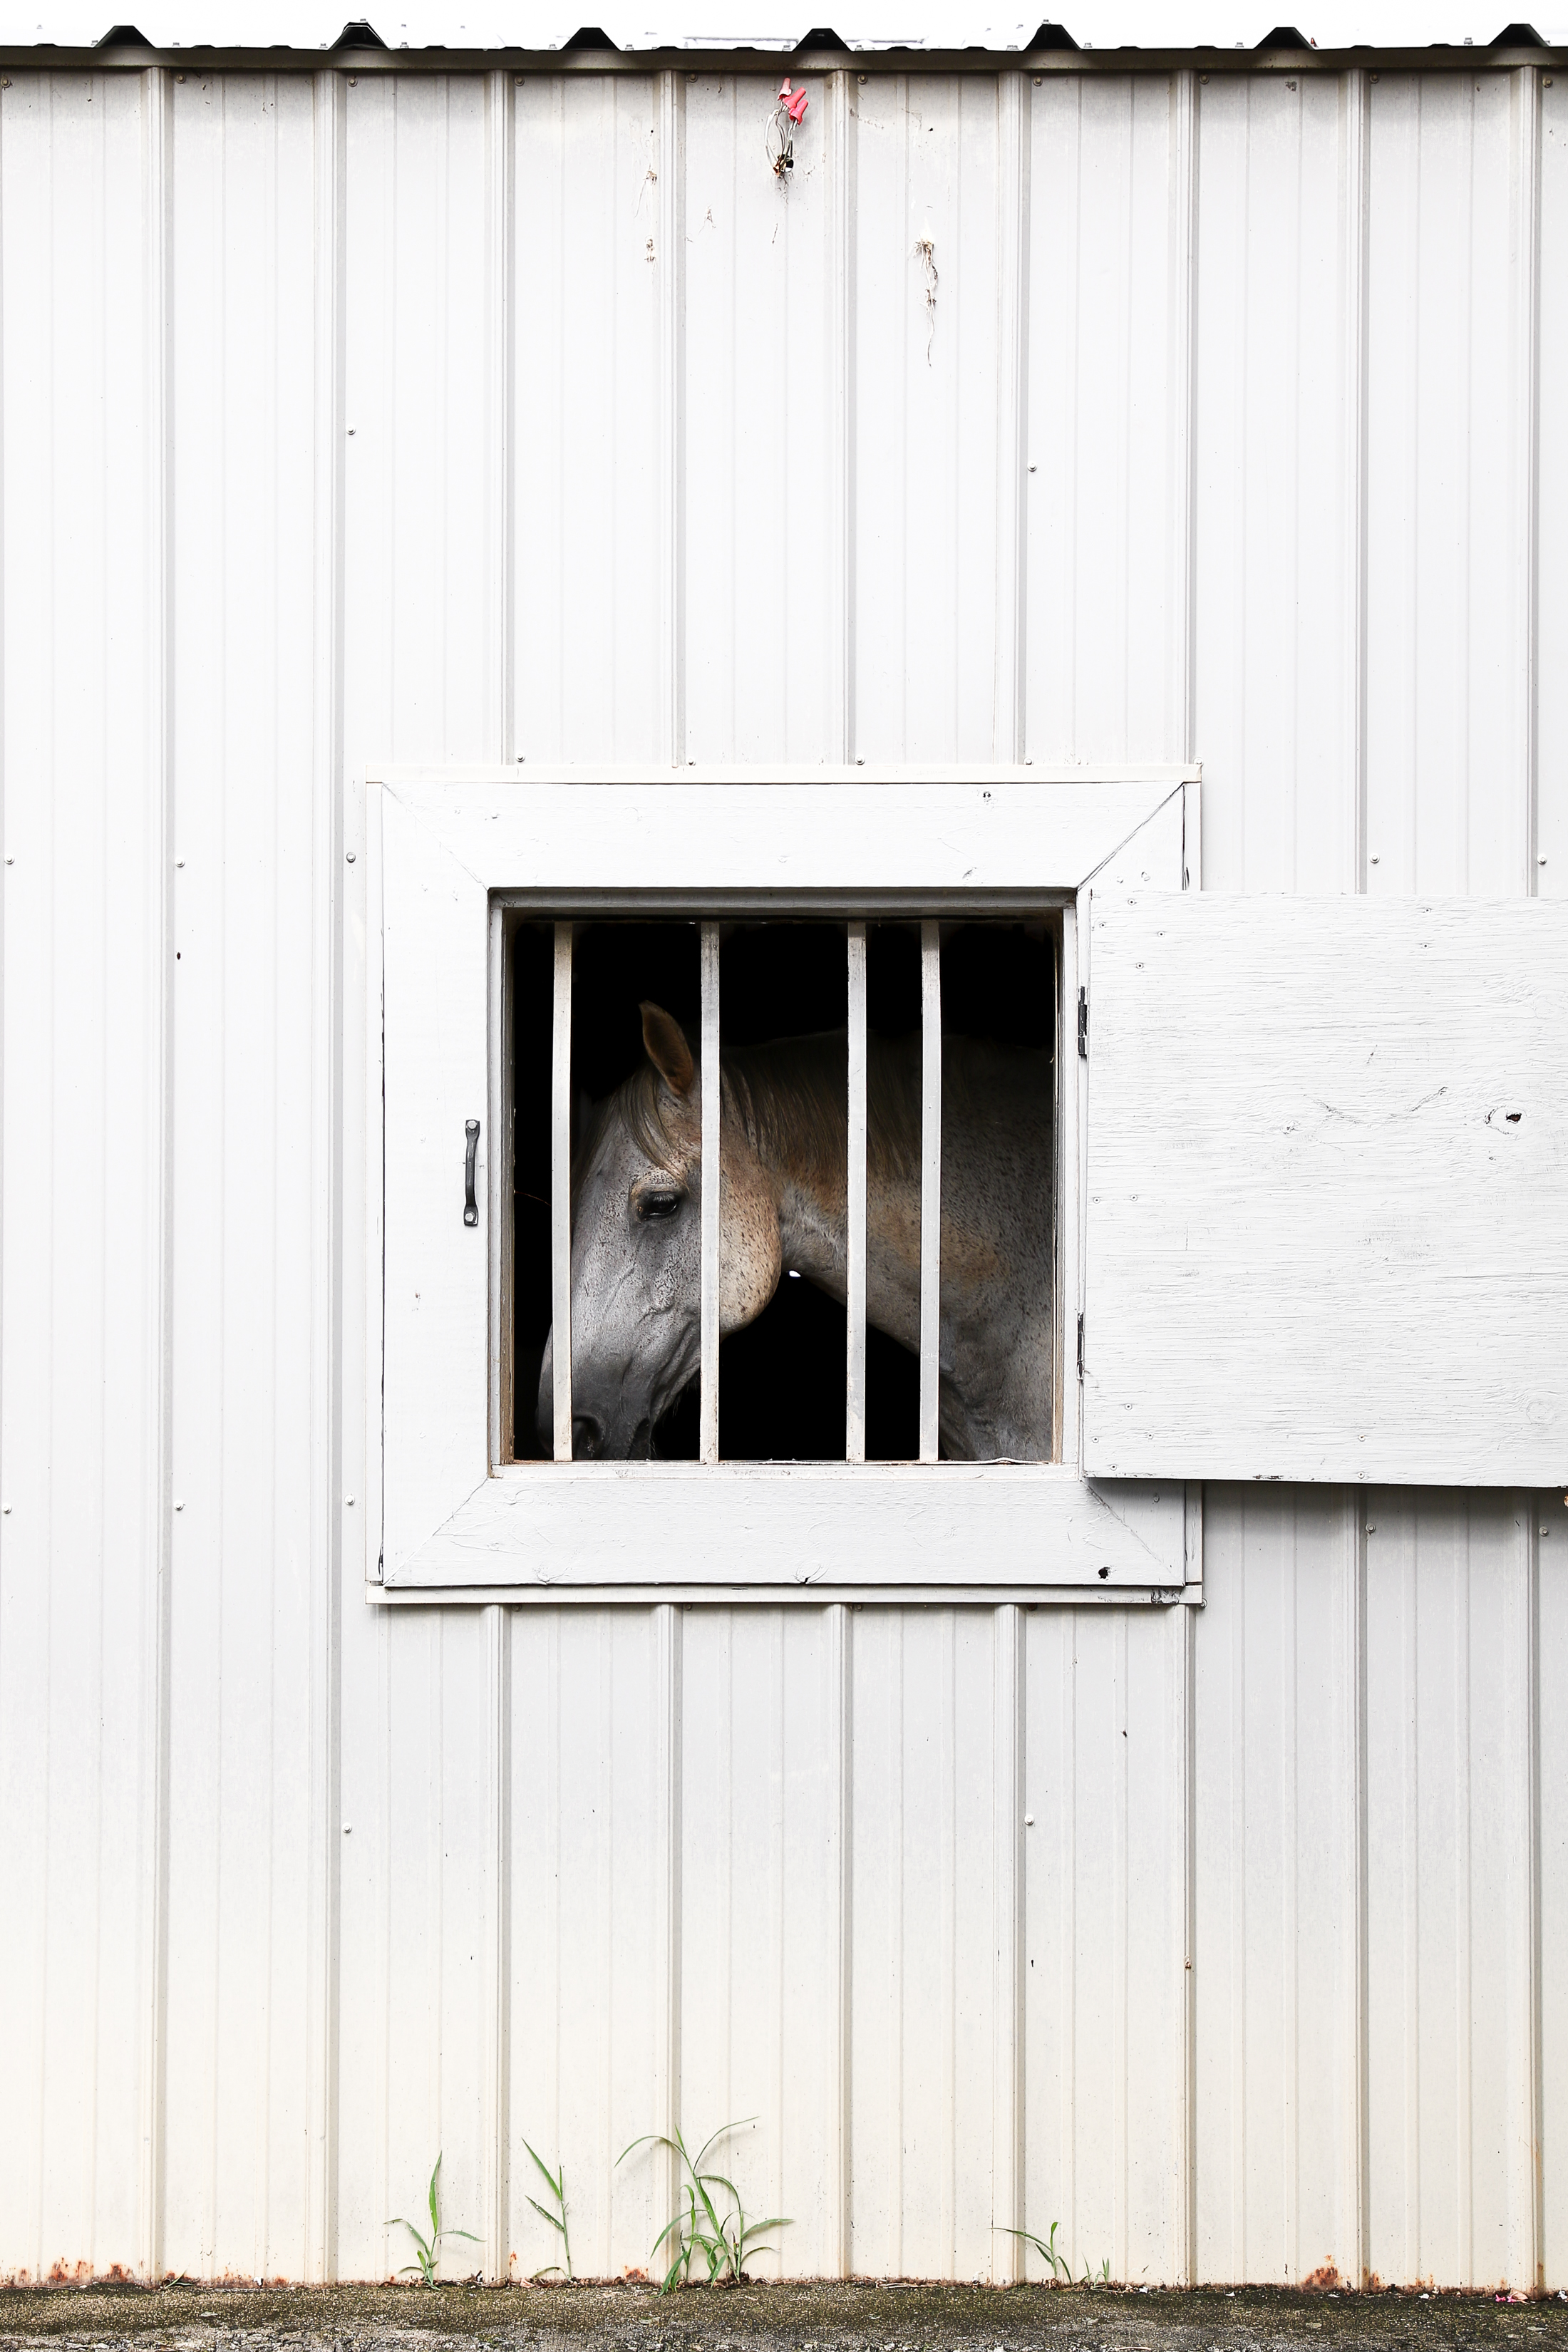 George, a University of Georgia equestrian horse, peers out the window of his stable in Bishop, Georgia, on Tuesday, July 17, 2018.